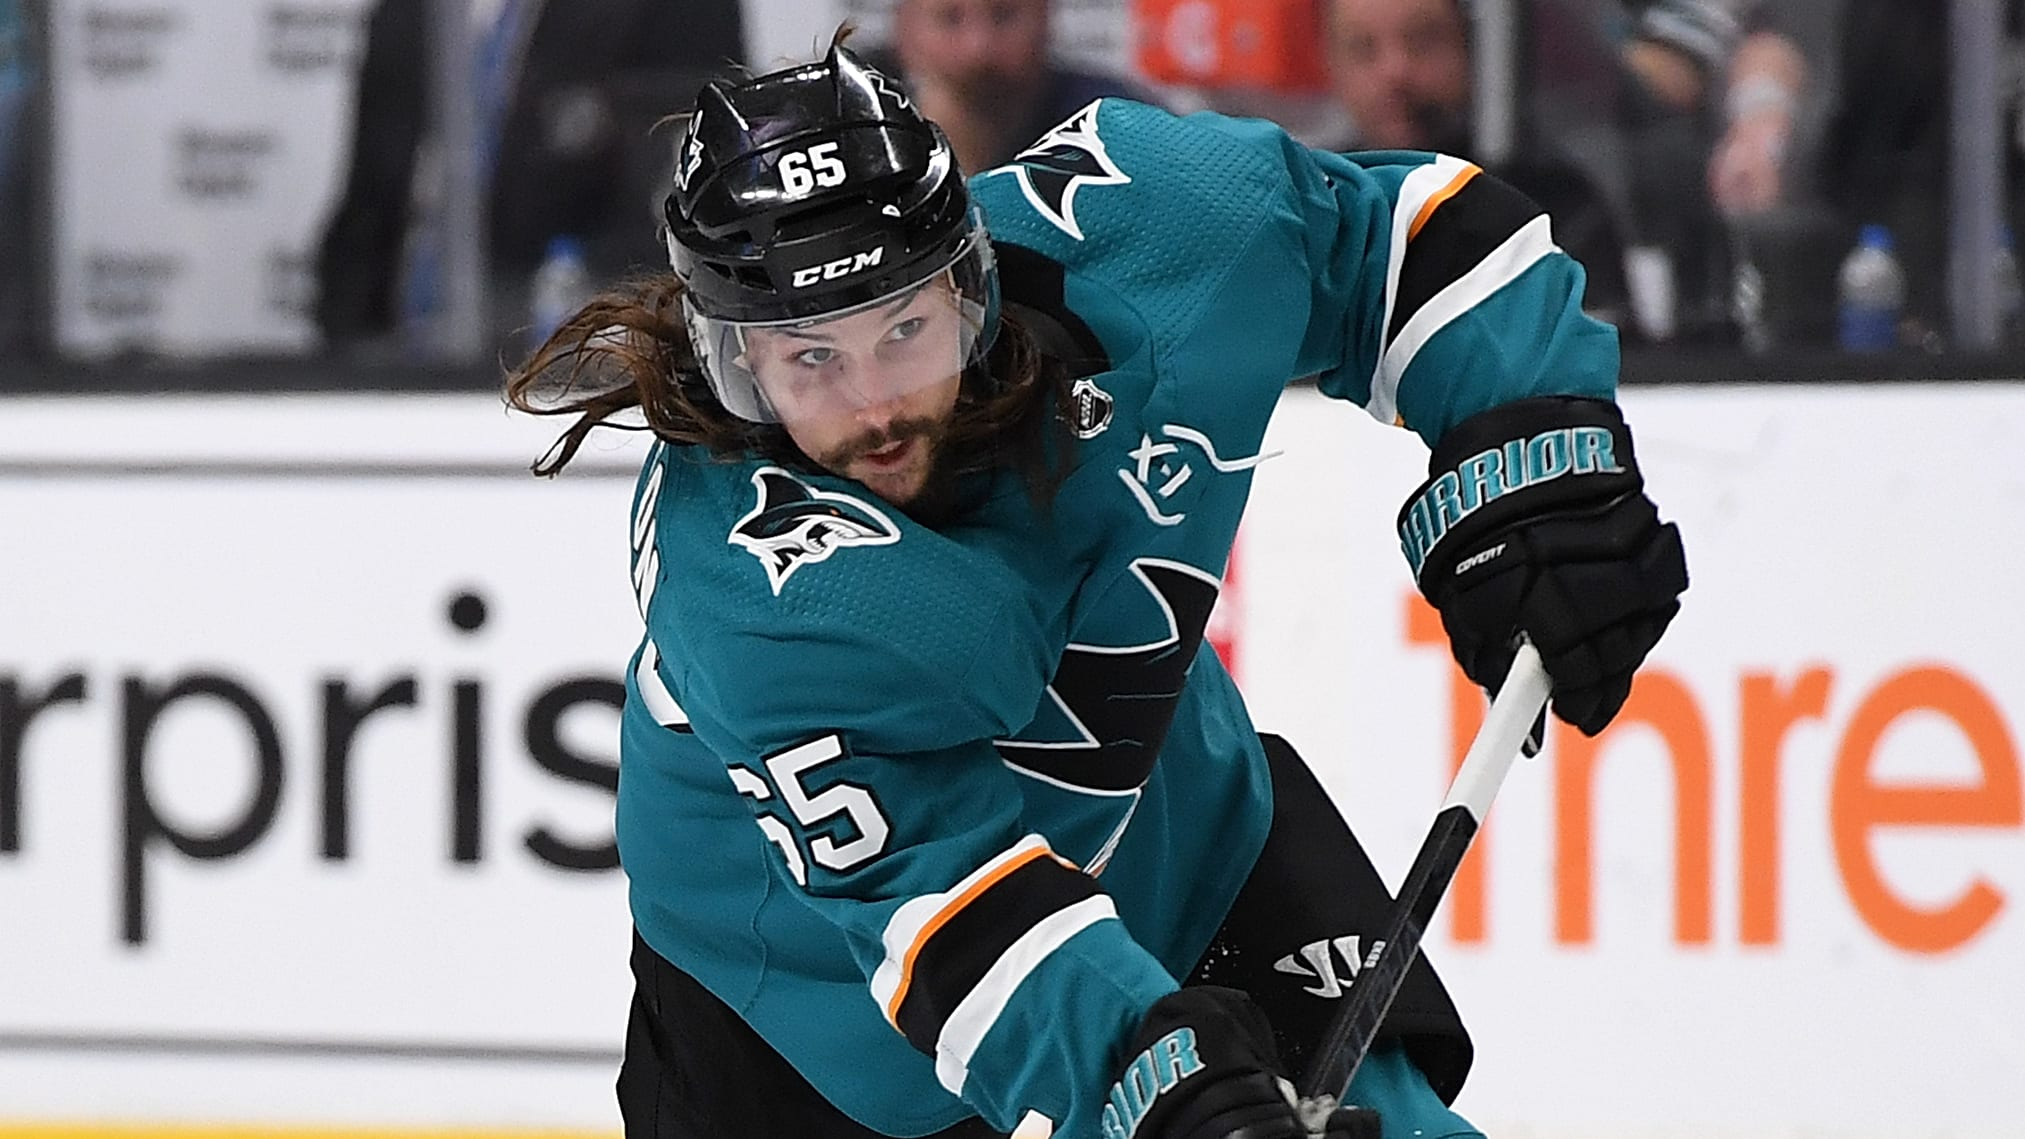 SAN JOSE, CA - APRIL 26:  Erik Karlsson #65 of the San Jose Sharks shoots on goal against the Colorado Avalanche during the second period in Game One of the Western Conference Second Round during the 2019 NHL Stanley Cup Playoffs at SAP Center on April 26, 2019 in San Jose, California.  (Photo by Thearon W. Henderson/Getty Images )